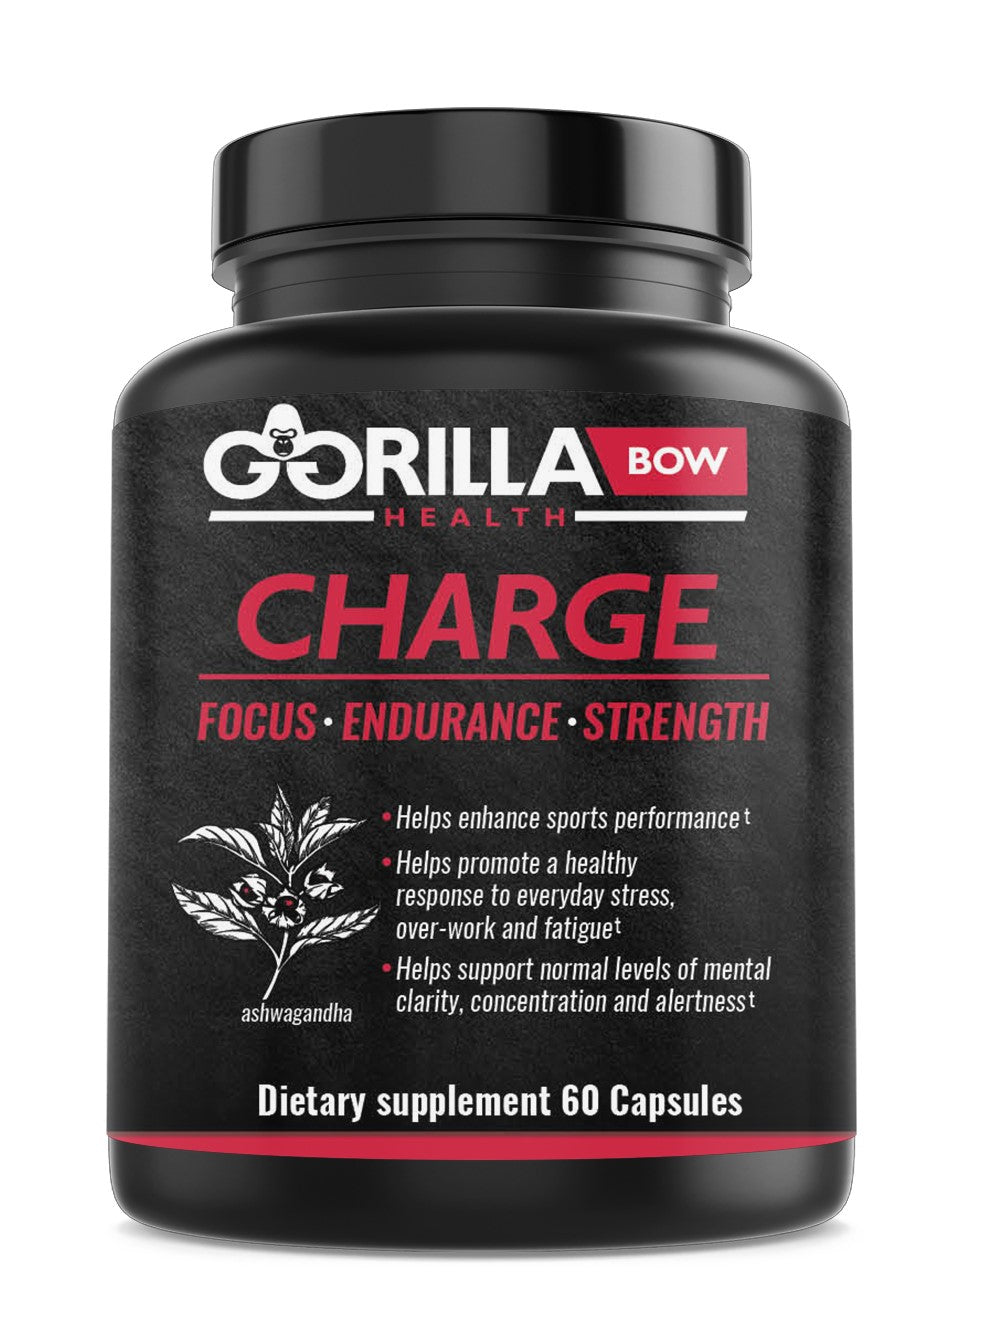 Gorilla Charge pre-workout supplement with Ashwagandha root extract and tart cherry powder